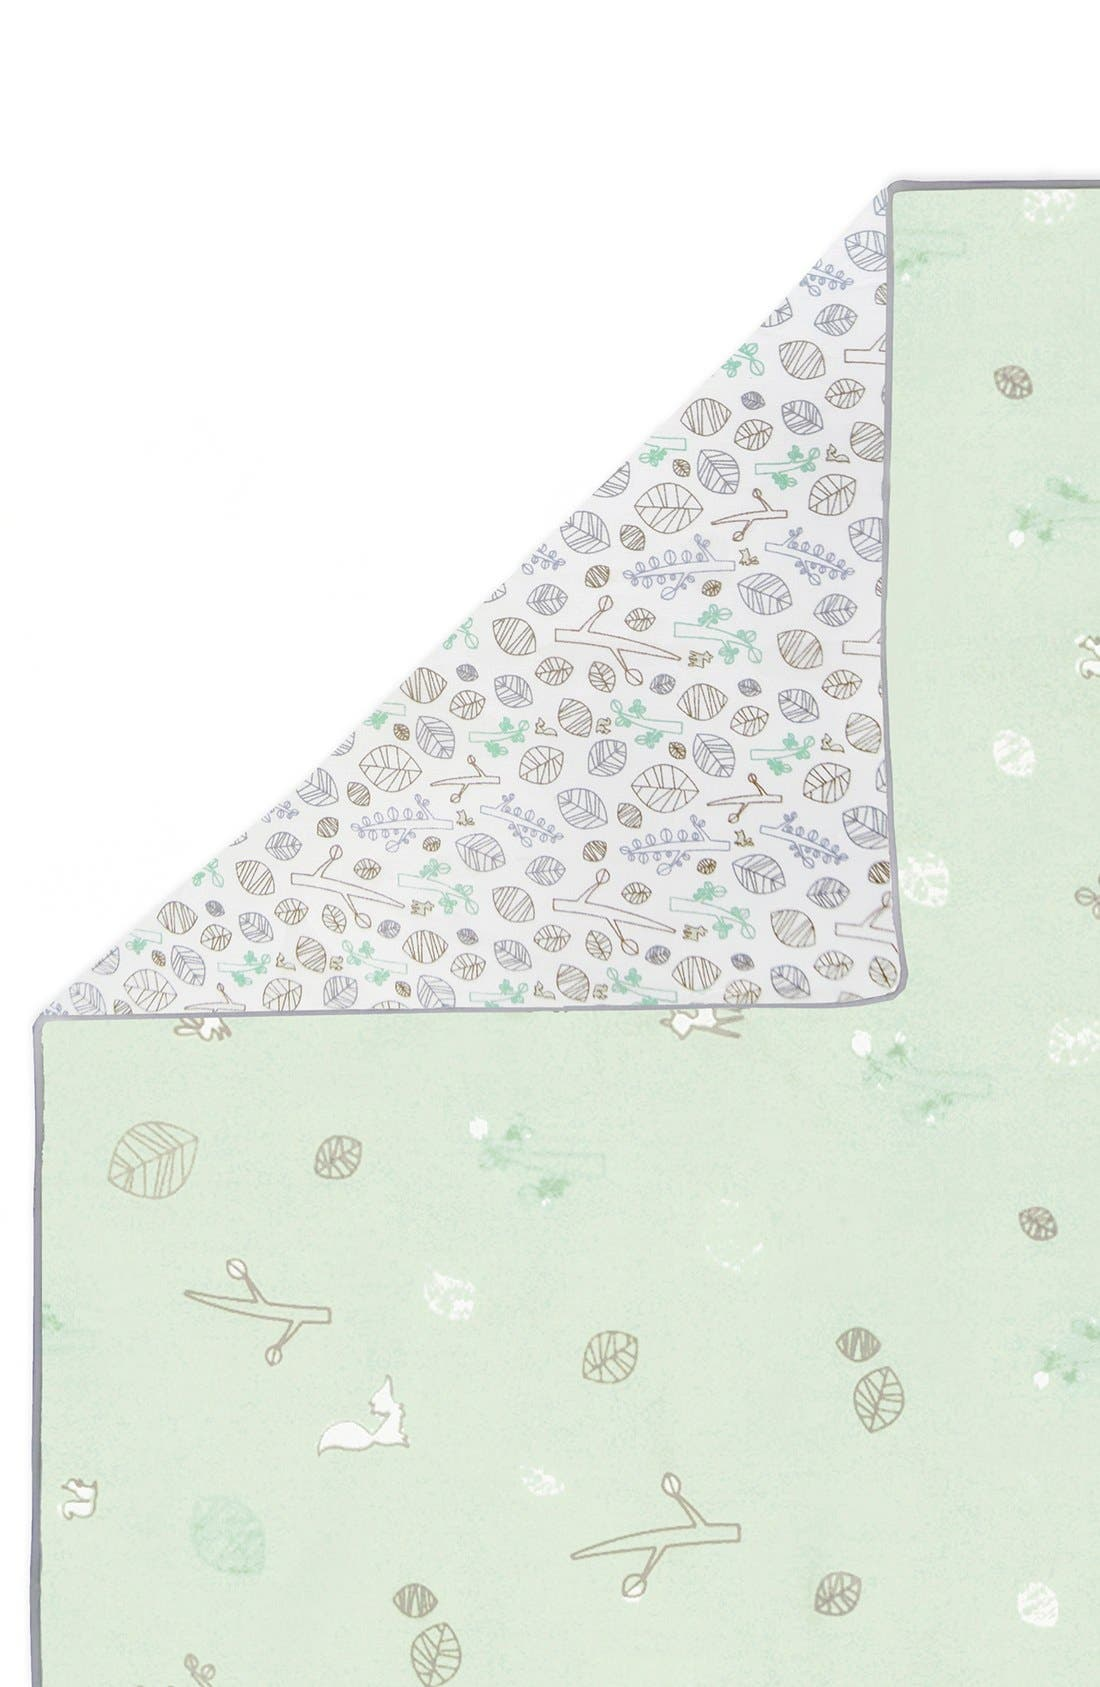 'Woods' Crib Sheet, Crib Skirt, Contour Changing Pad, Play Blanket & Wall Decals,                             Alternate thumbnail 4, color,                             Green